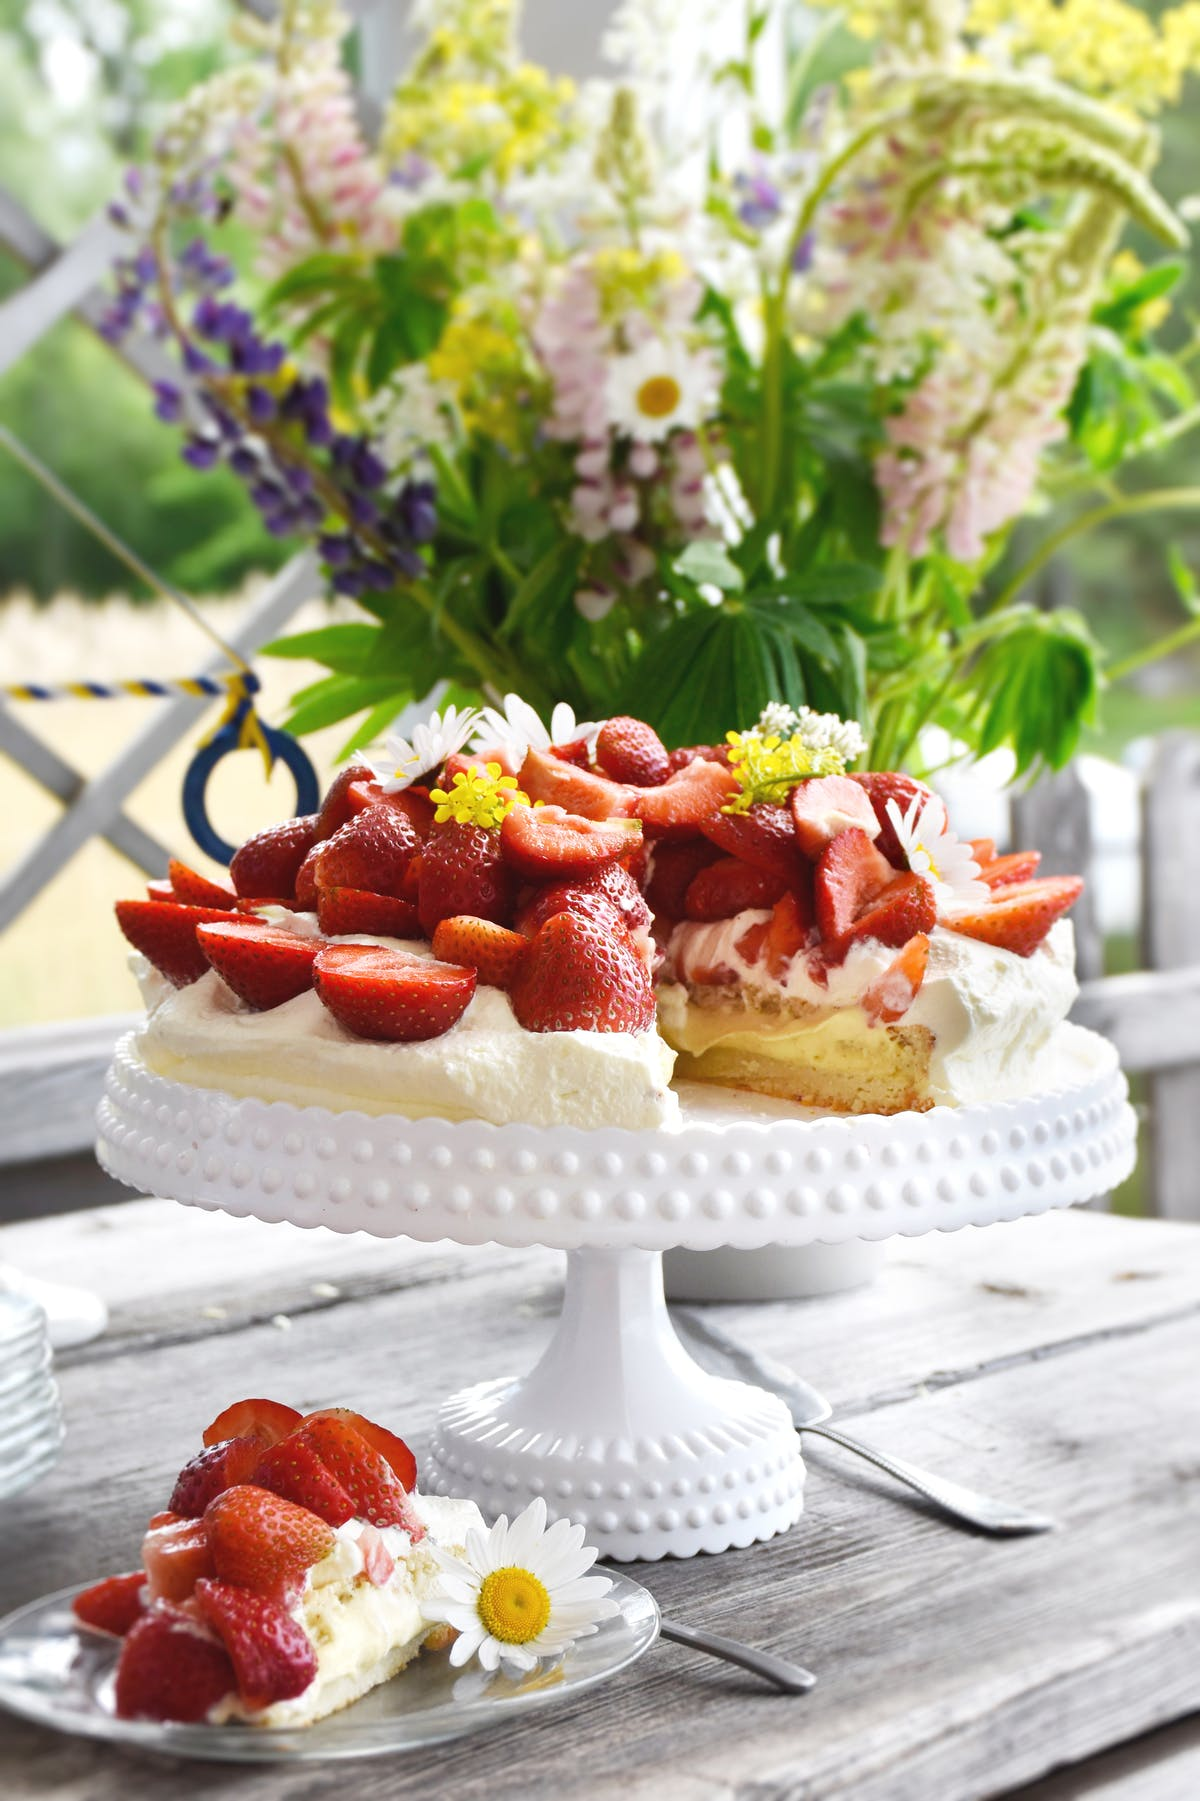 Low-carb strawberry cake with vanilla buttercream